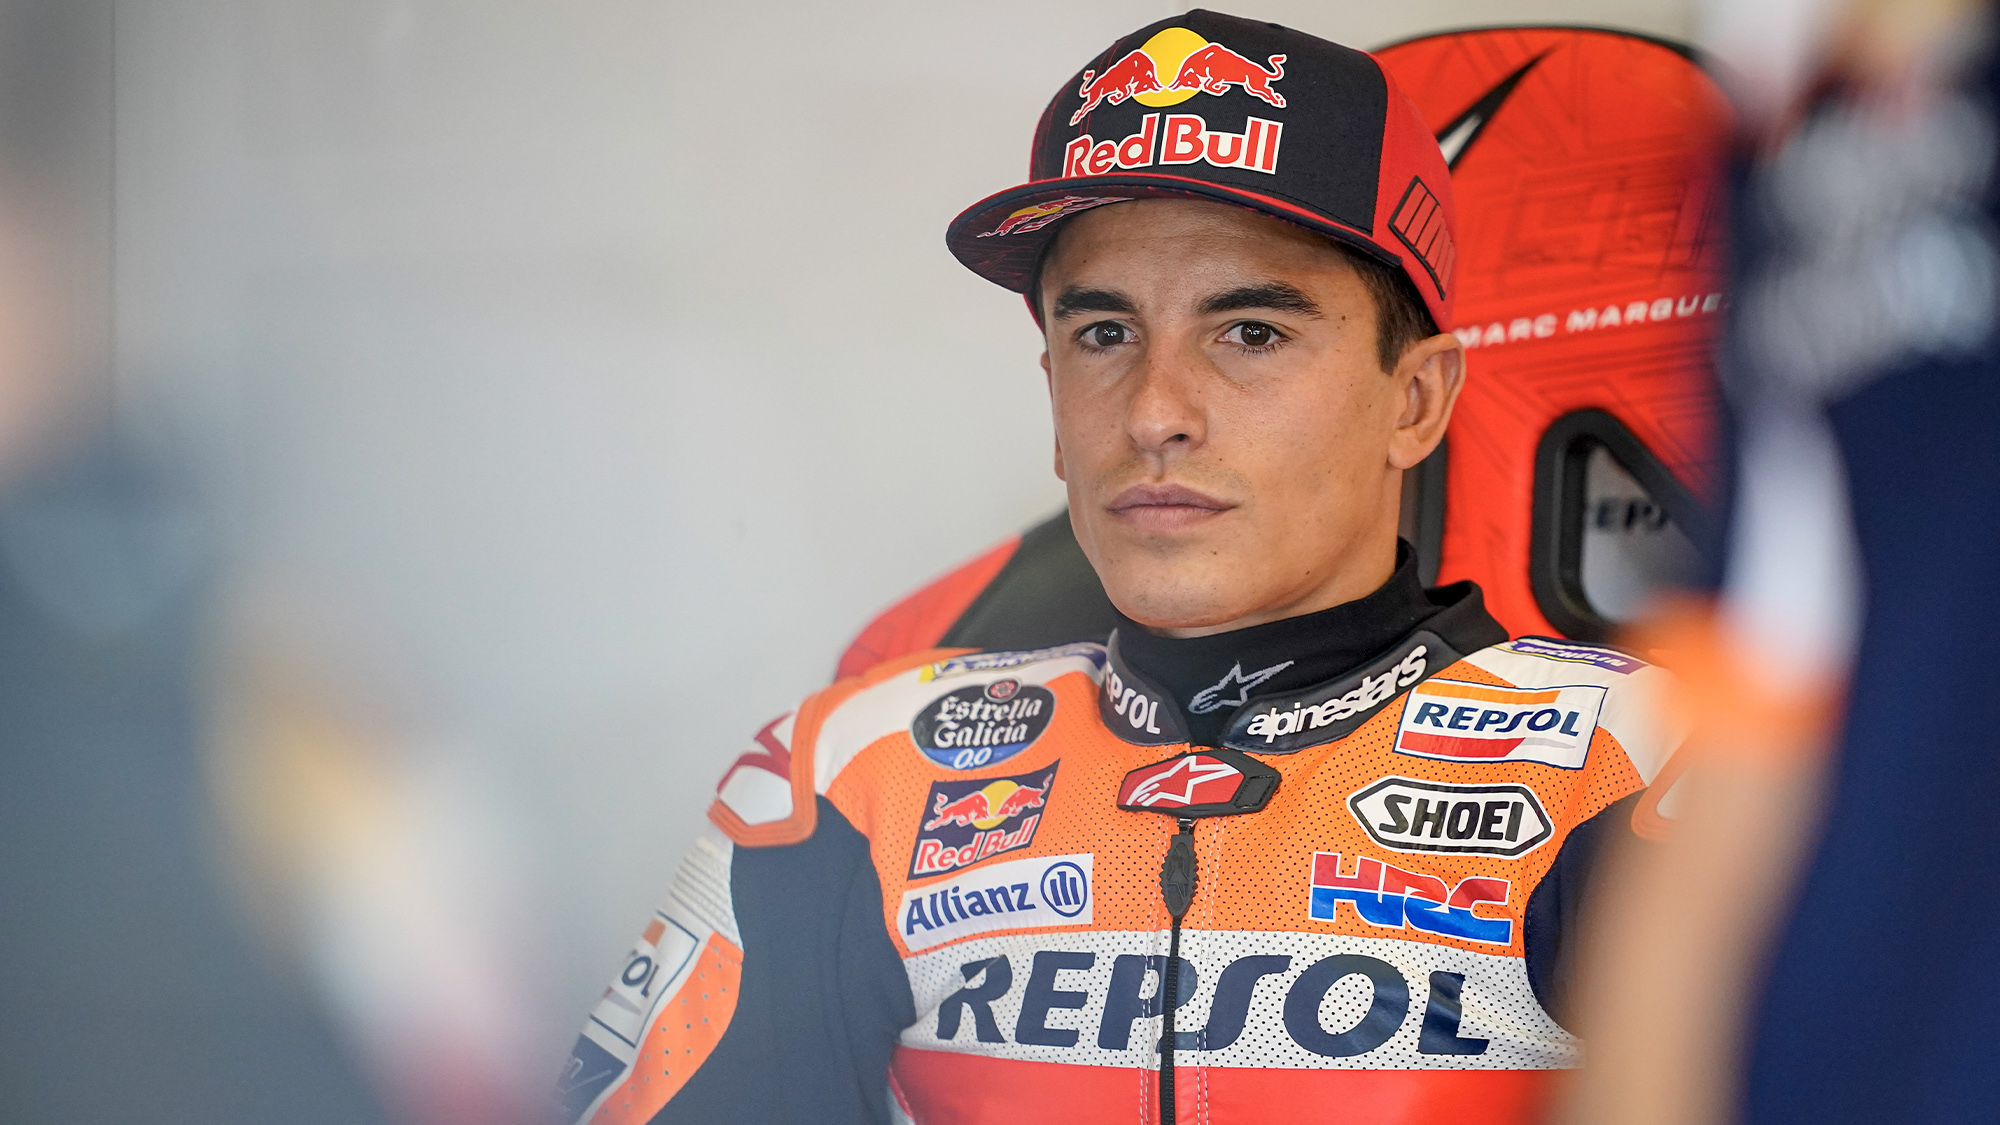 Marc Márquez out of Andalusian GP after abandoning qualifying